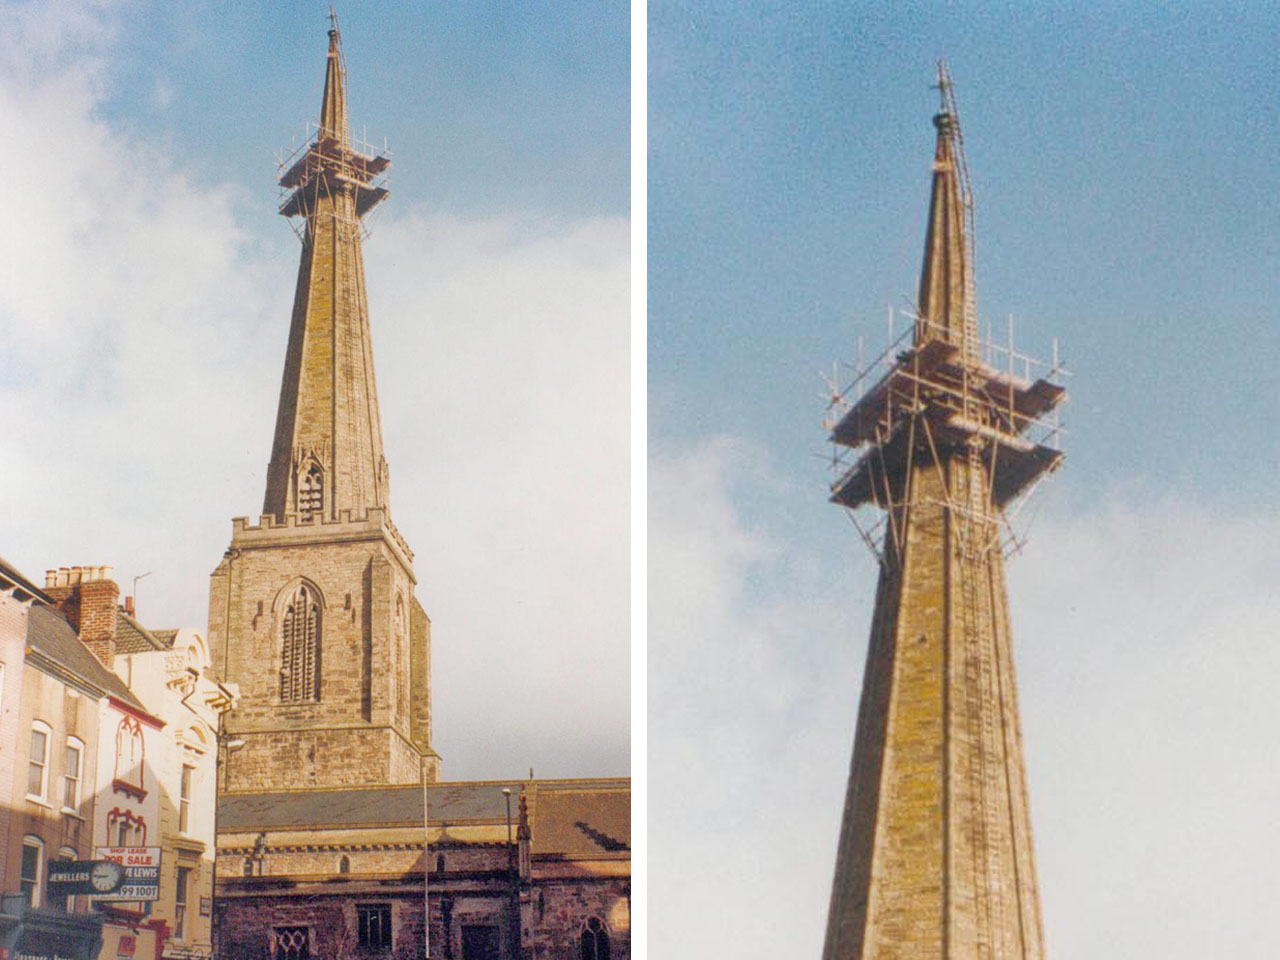 All Saints Church Spire